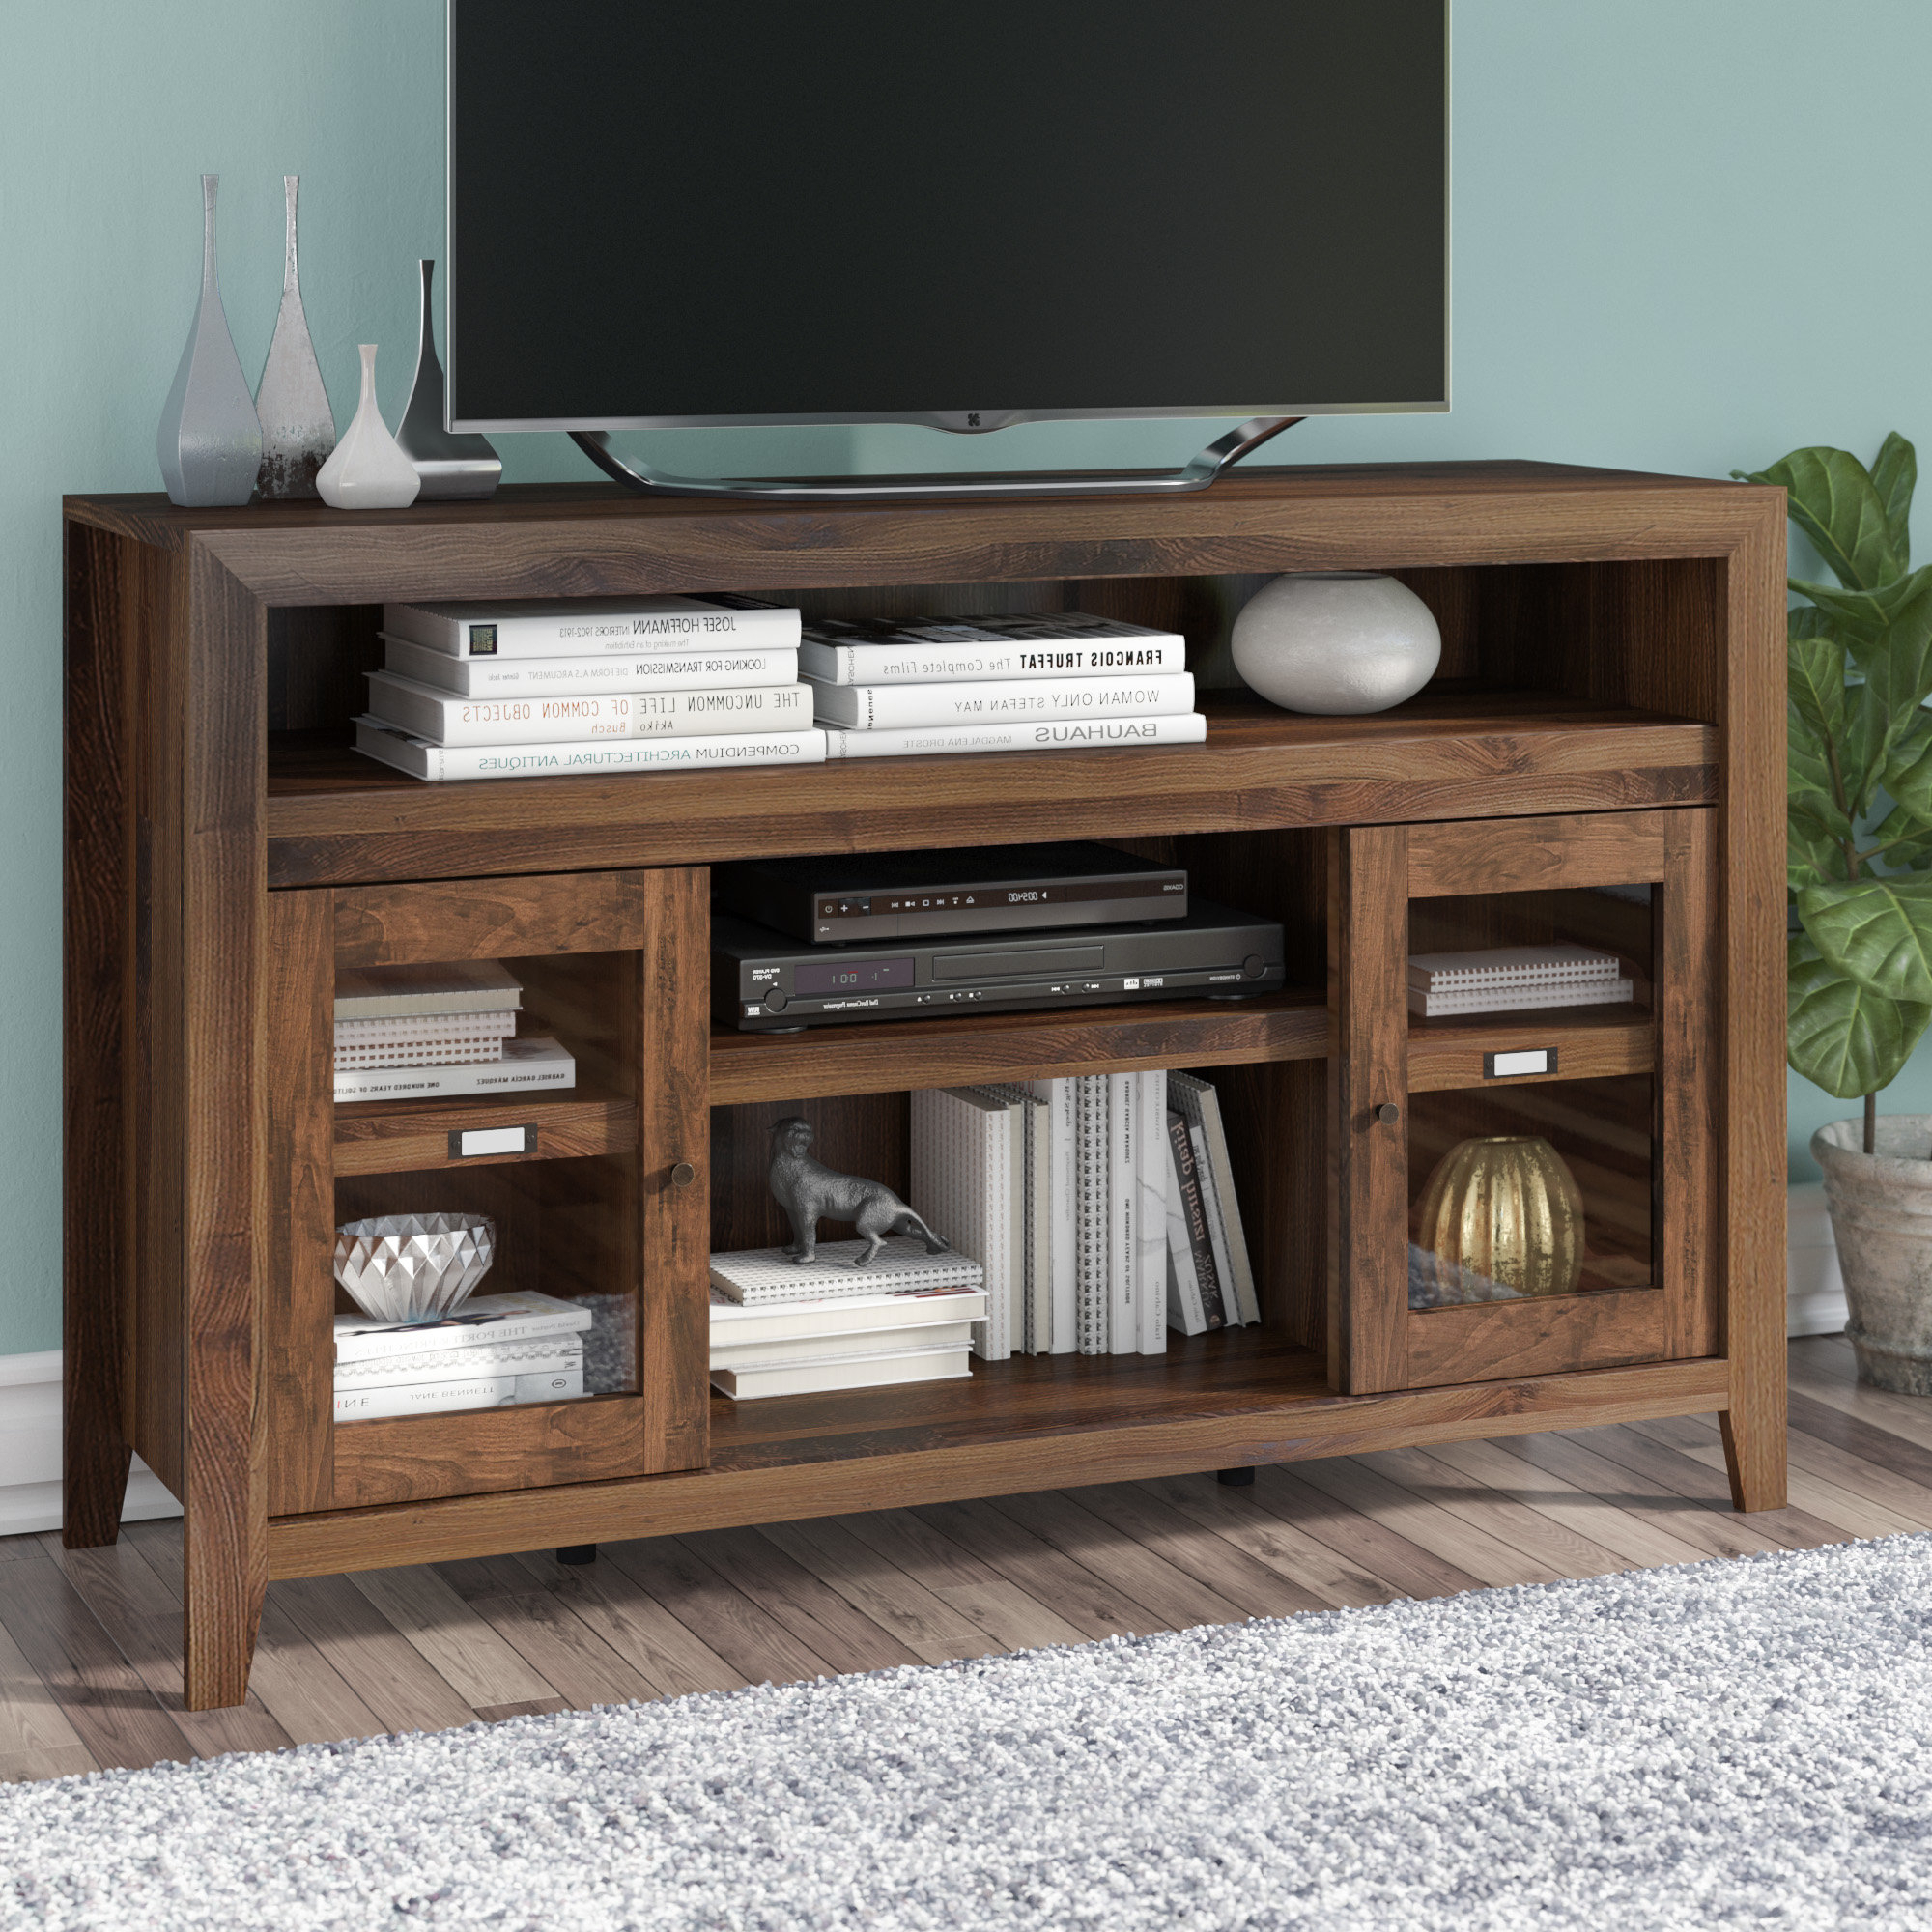 Tall Tv Stands You'll Love | Wayfair For Wyatt 68 Inch Tv Stands (View 12 of 20)